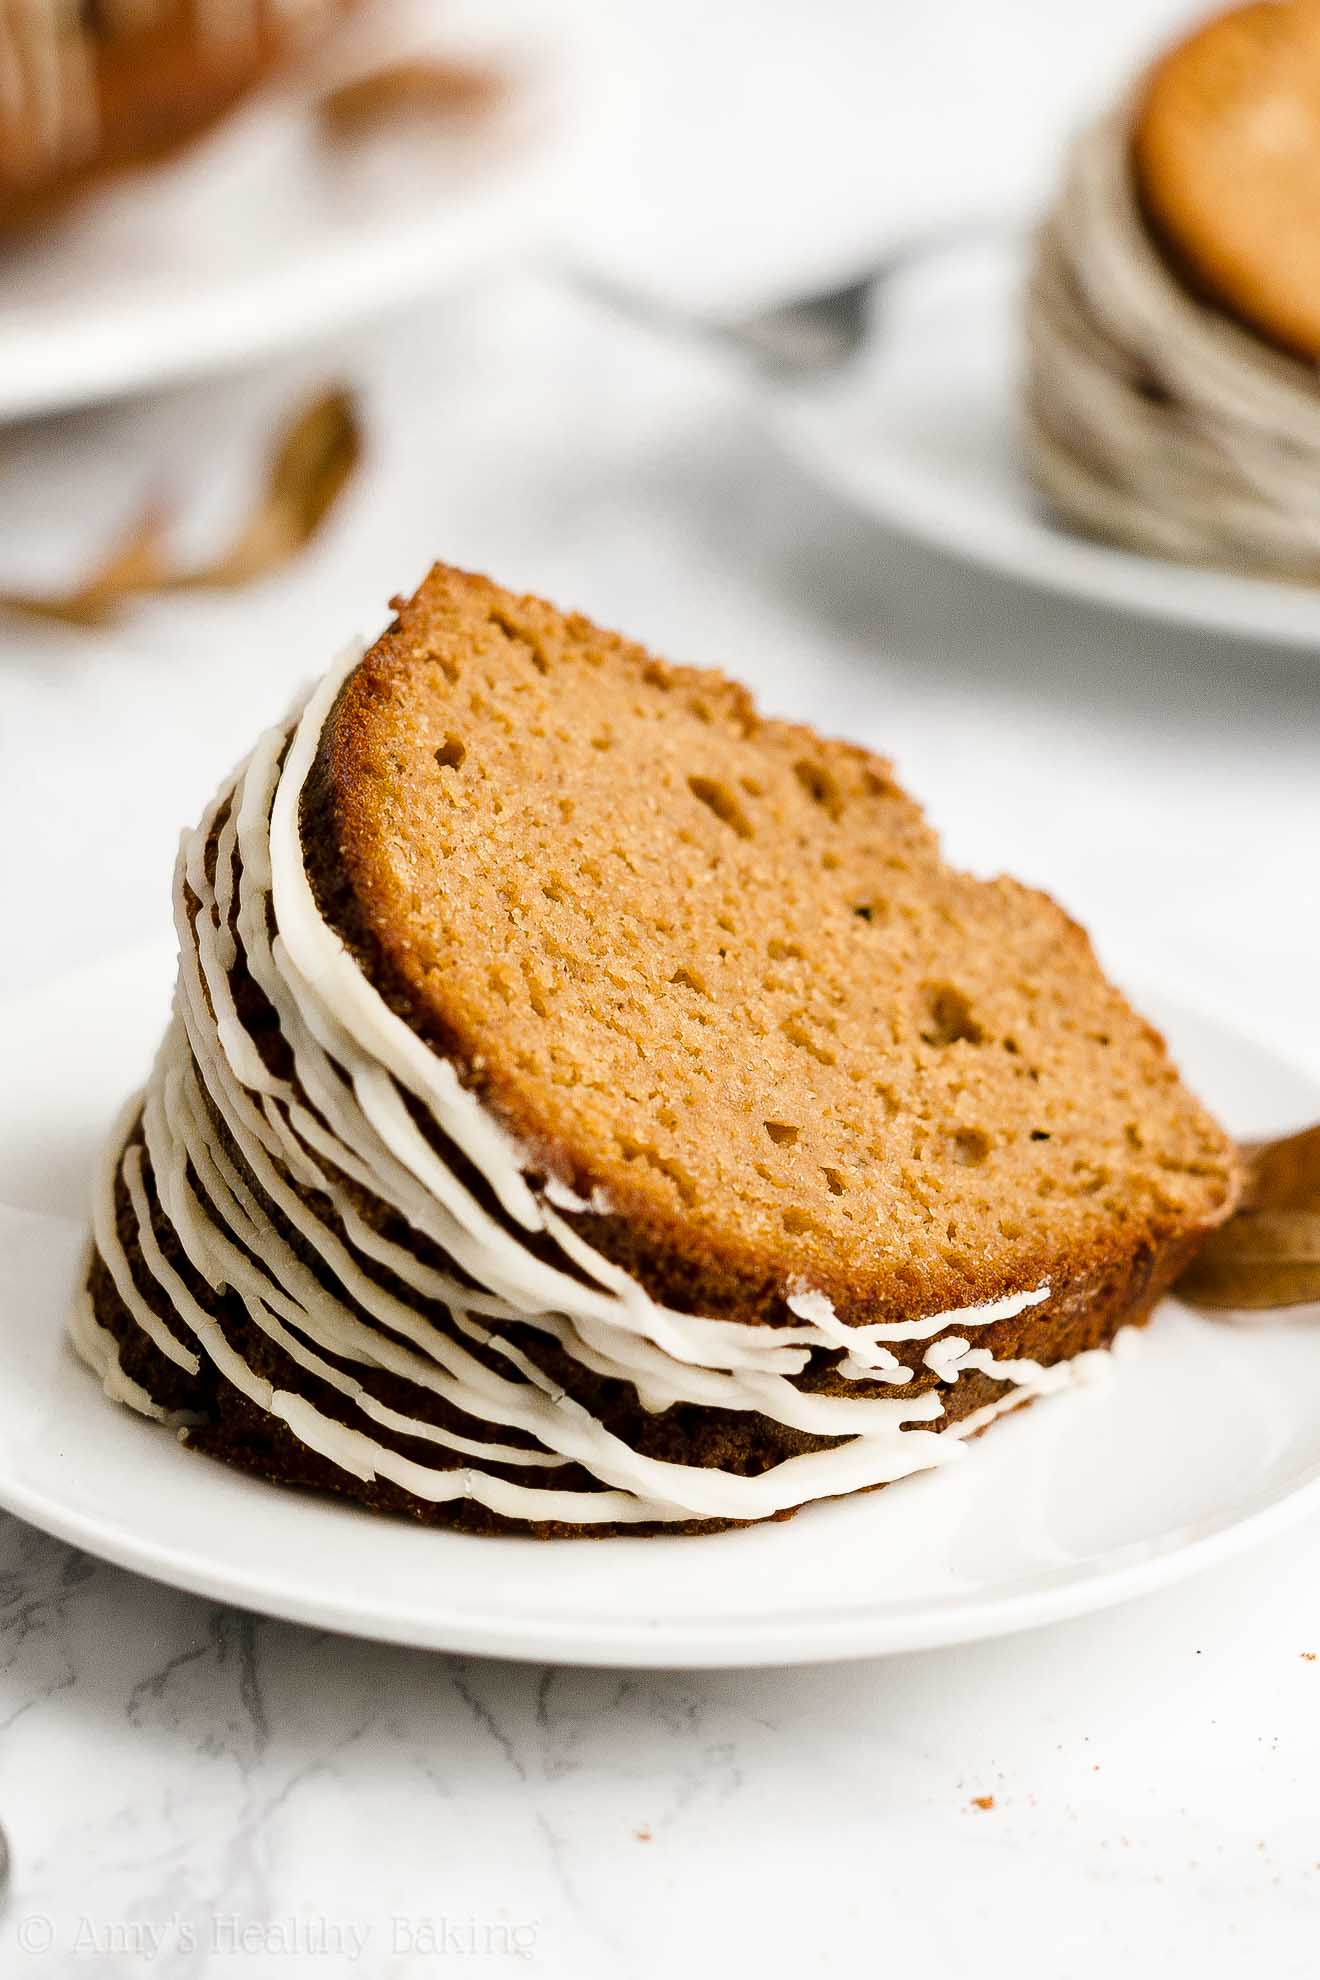 Ultimate Healthy Low Fat Sugar Free Greek Yogurt Gingerbread Bundt Cake